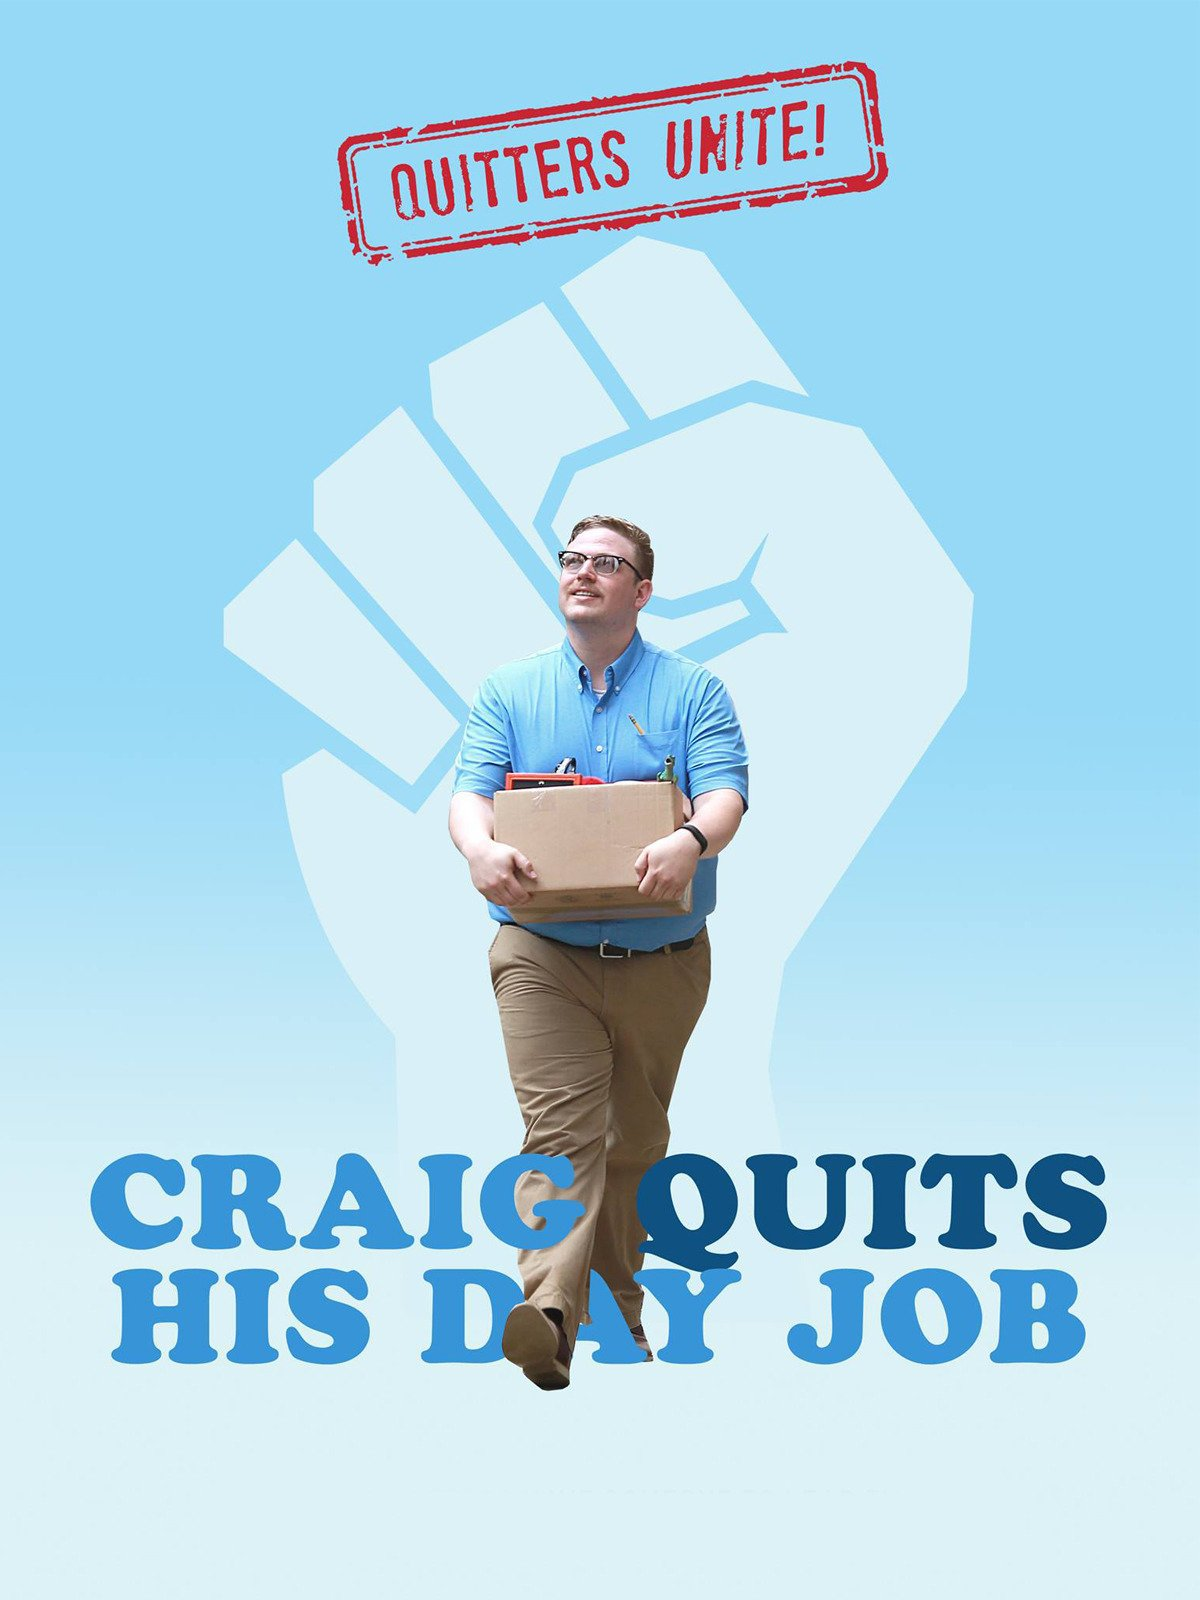 Craig Quits His Day Job